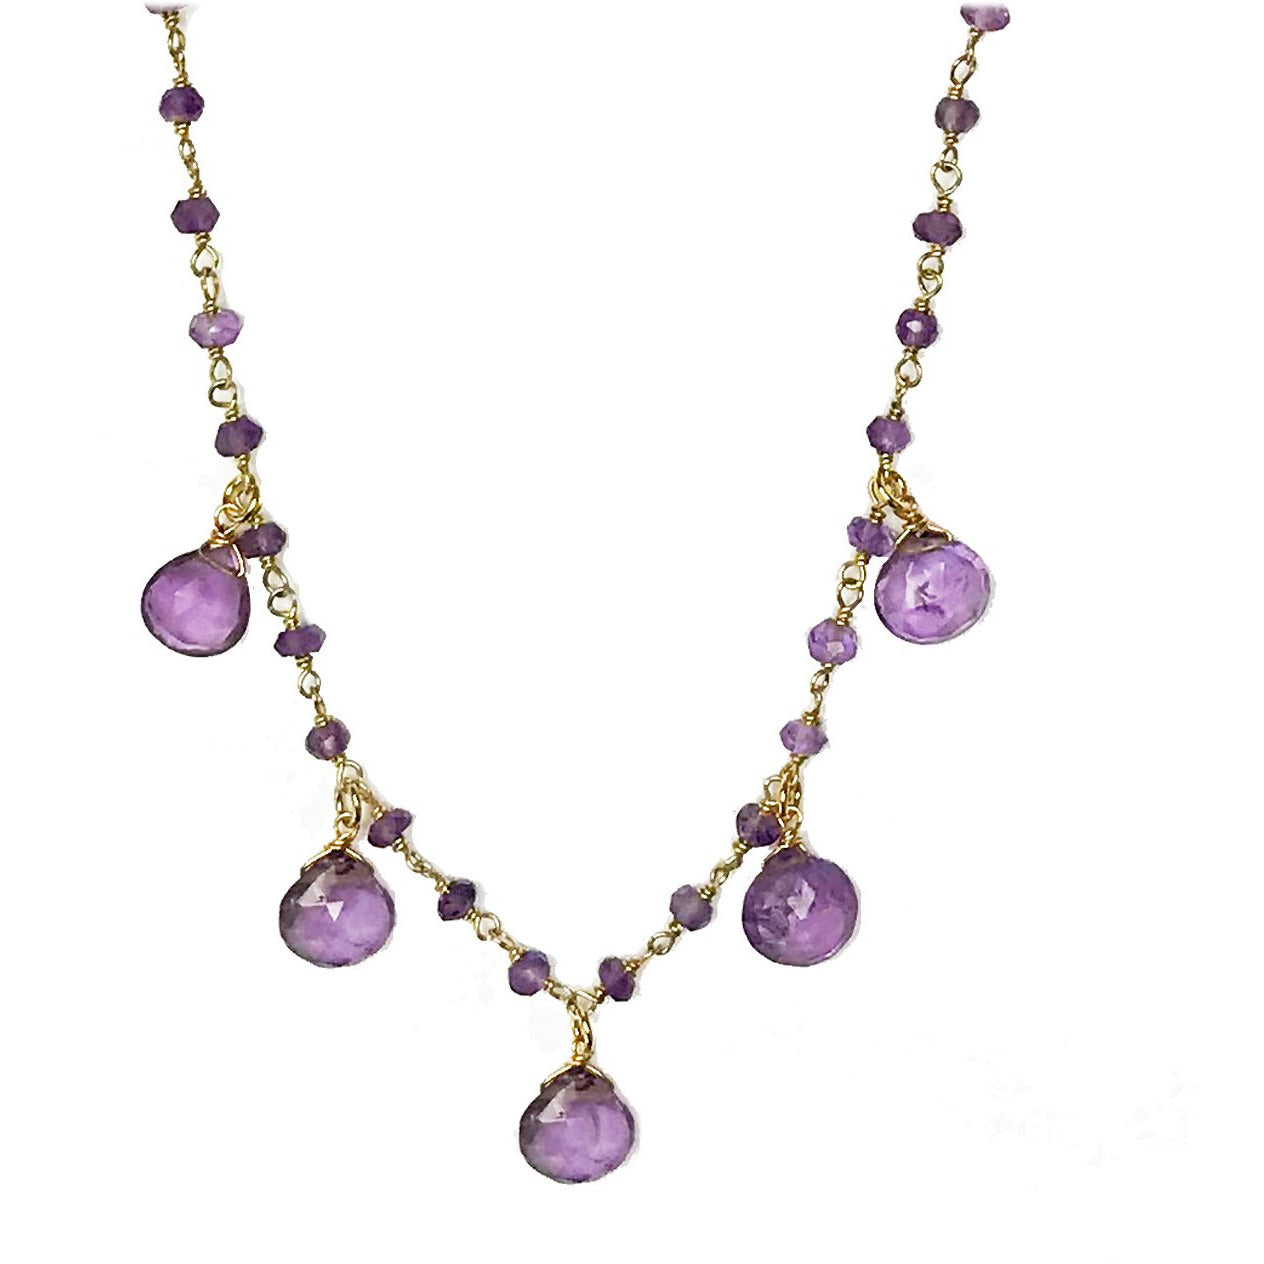 Amethyst Droplet Necklace - 14k Gold Vermeil